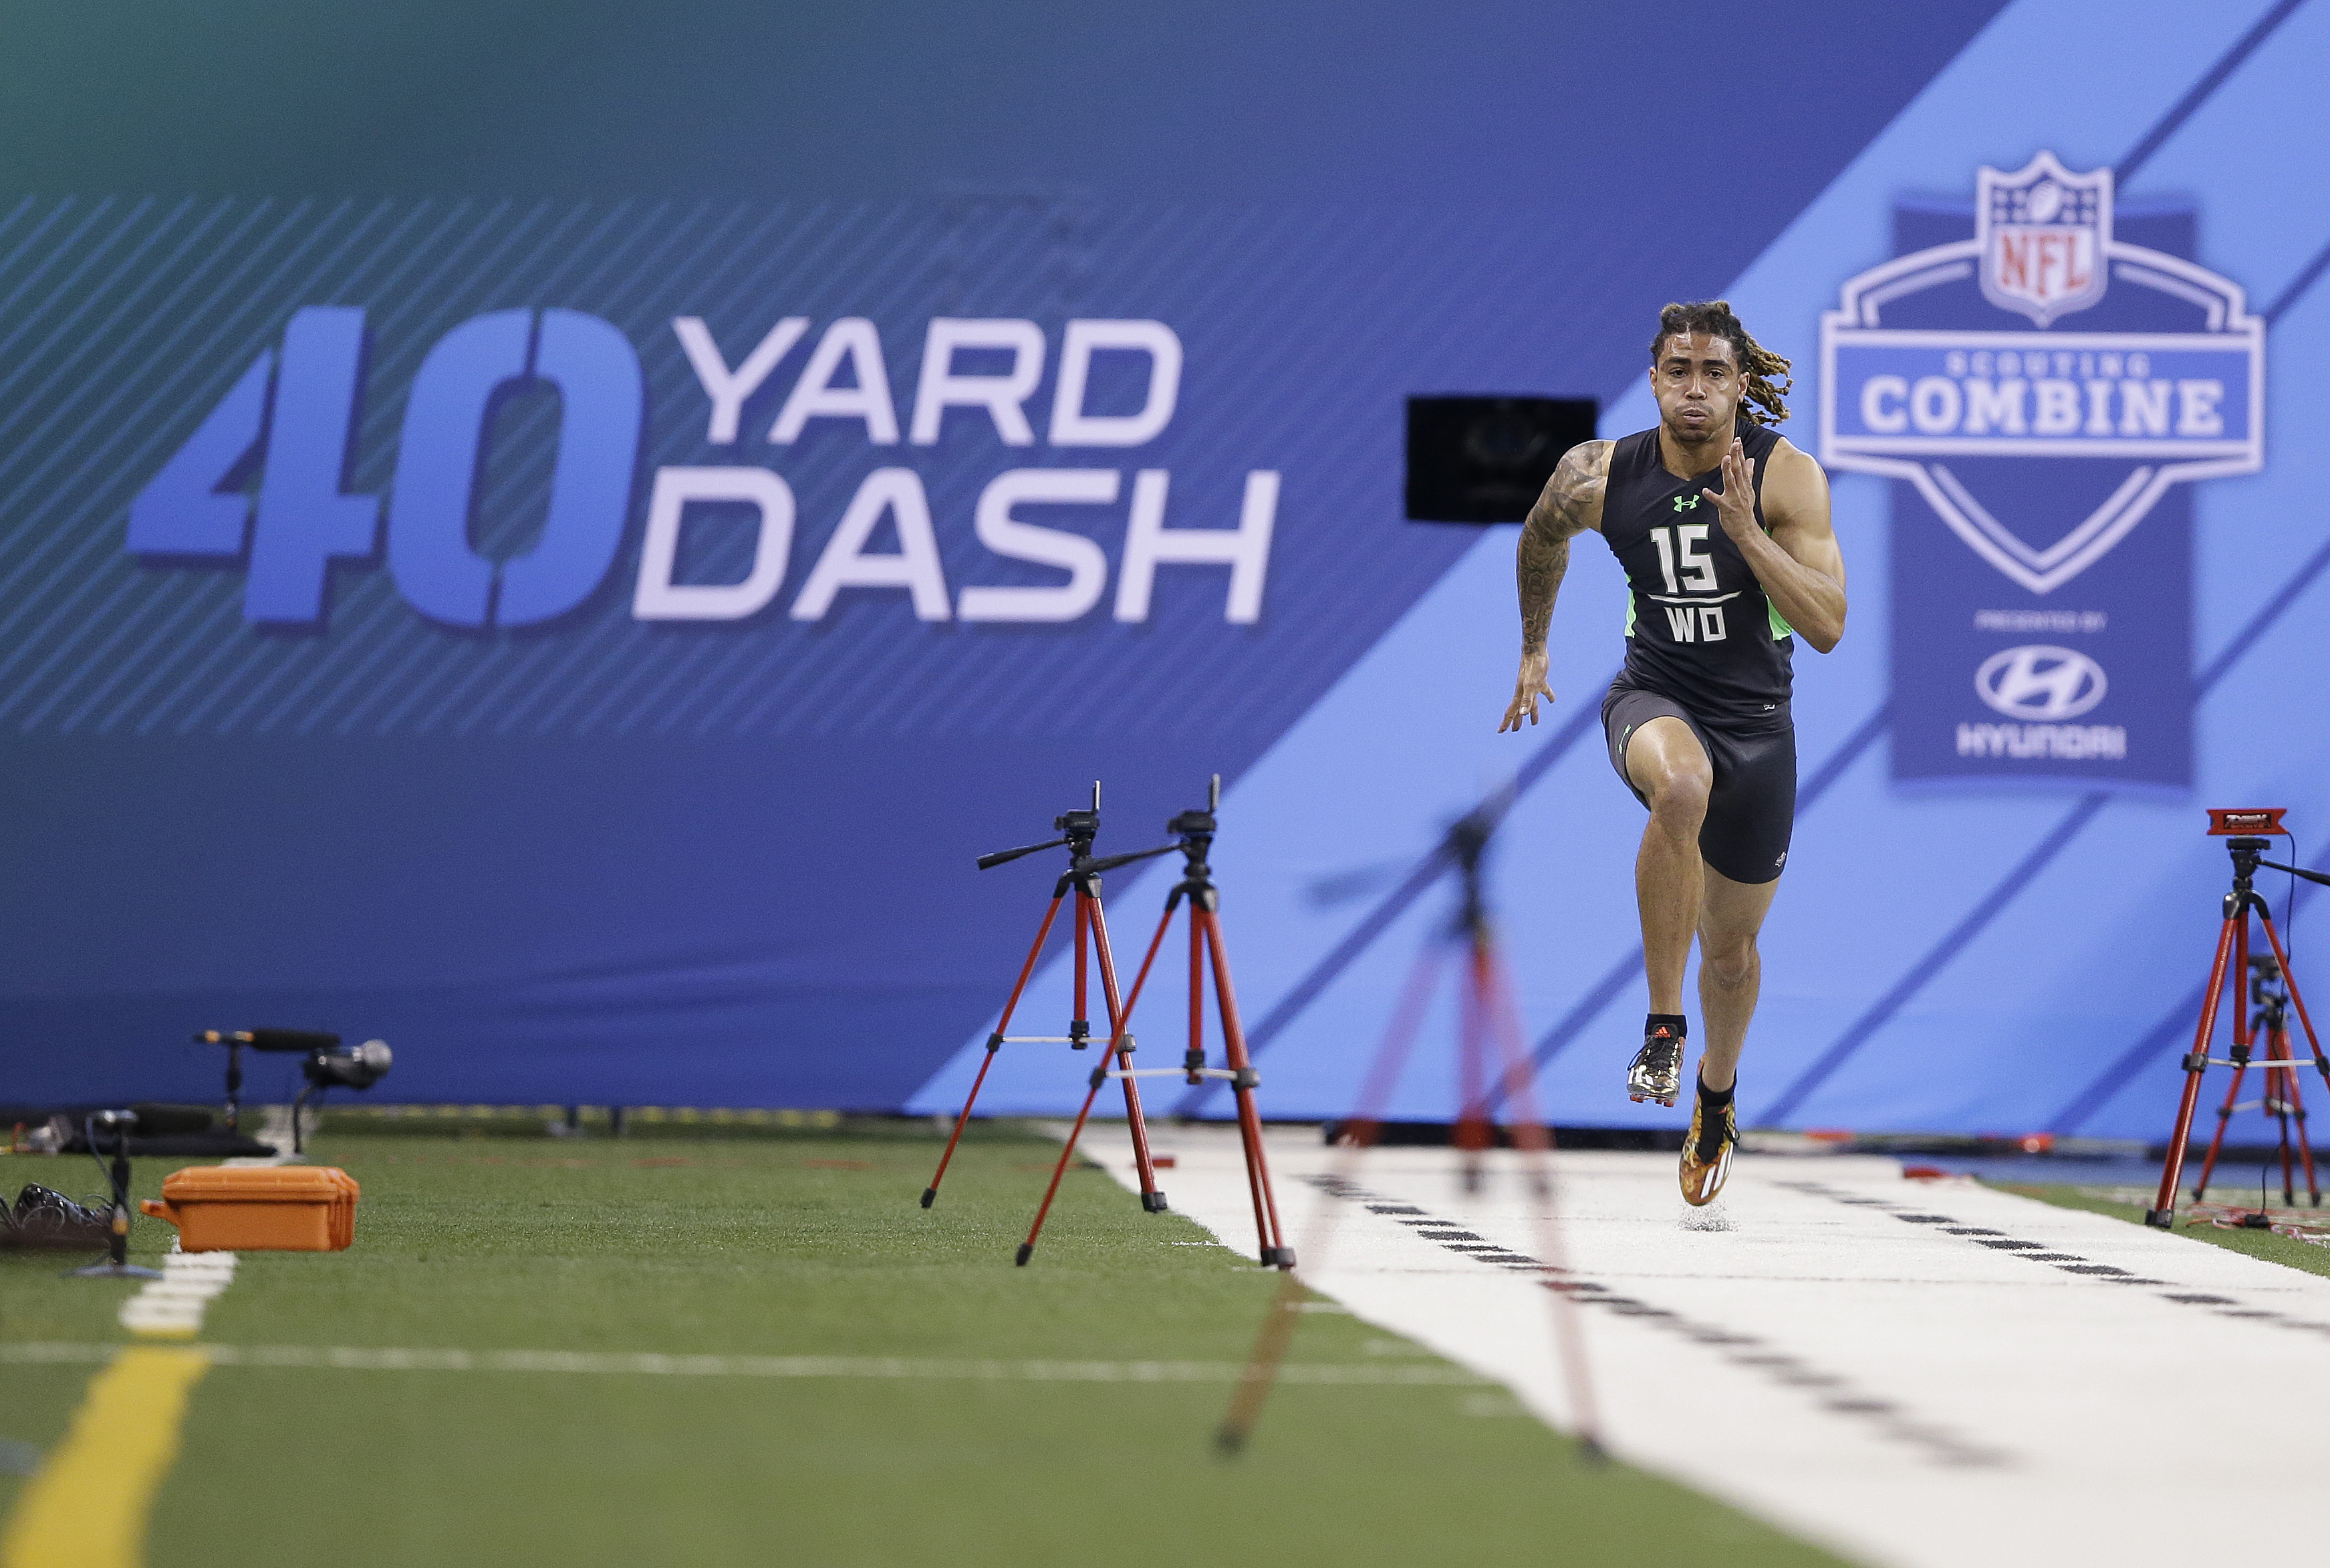 Notre Dame receiver Will Fuller runs the 40-yard dash at the NFL football scouting combine in Saturday, Feb. 27, 2016, in Indianapolis. (AP Photo/Darron Cummings)